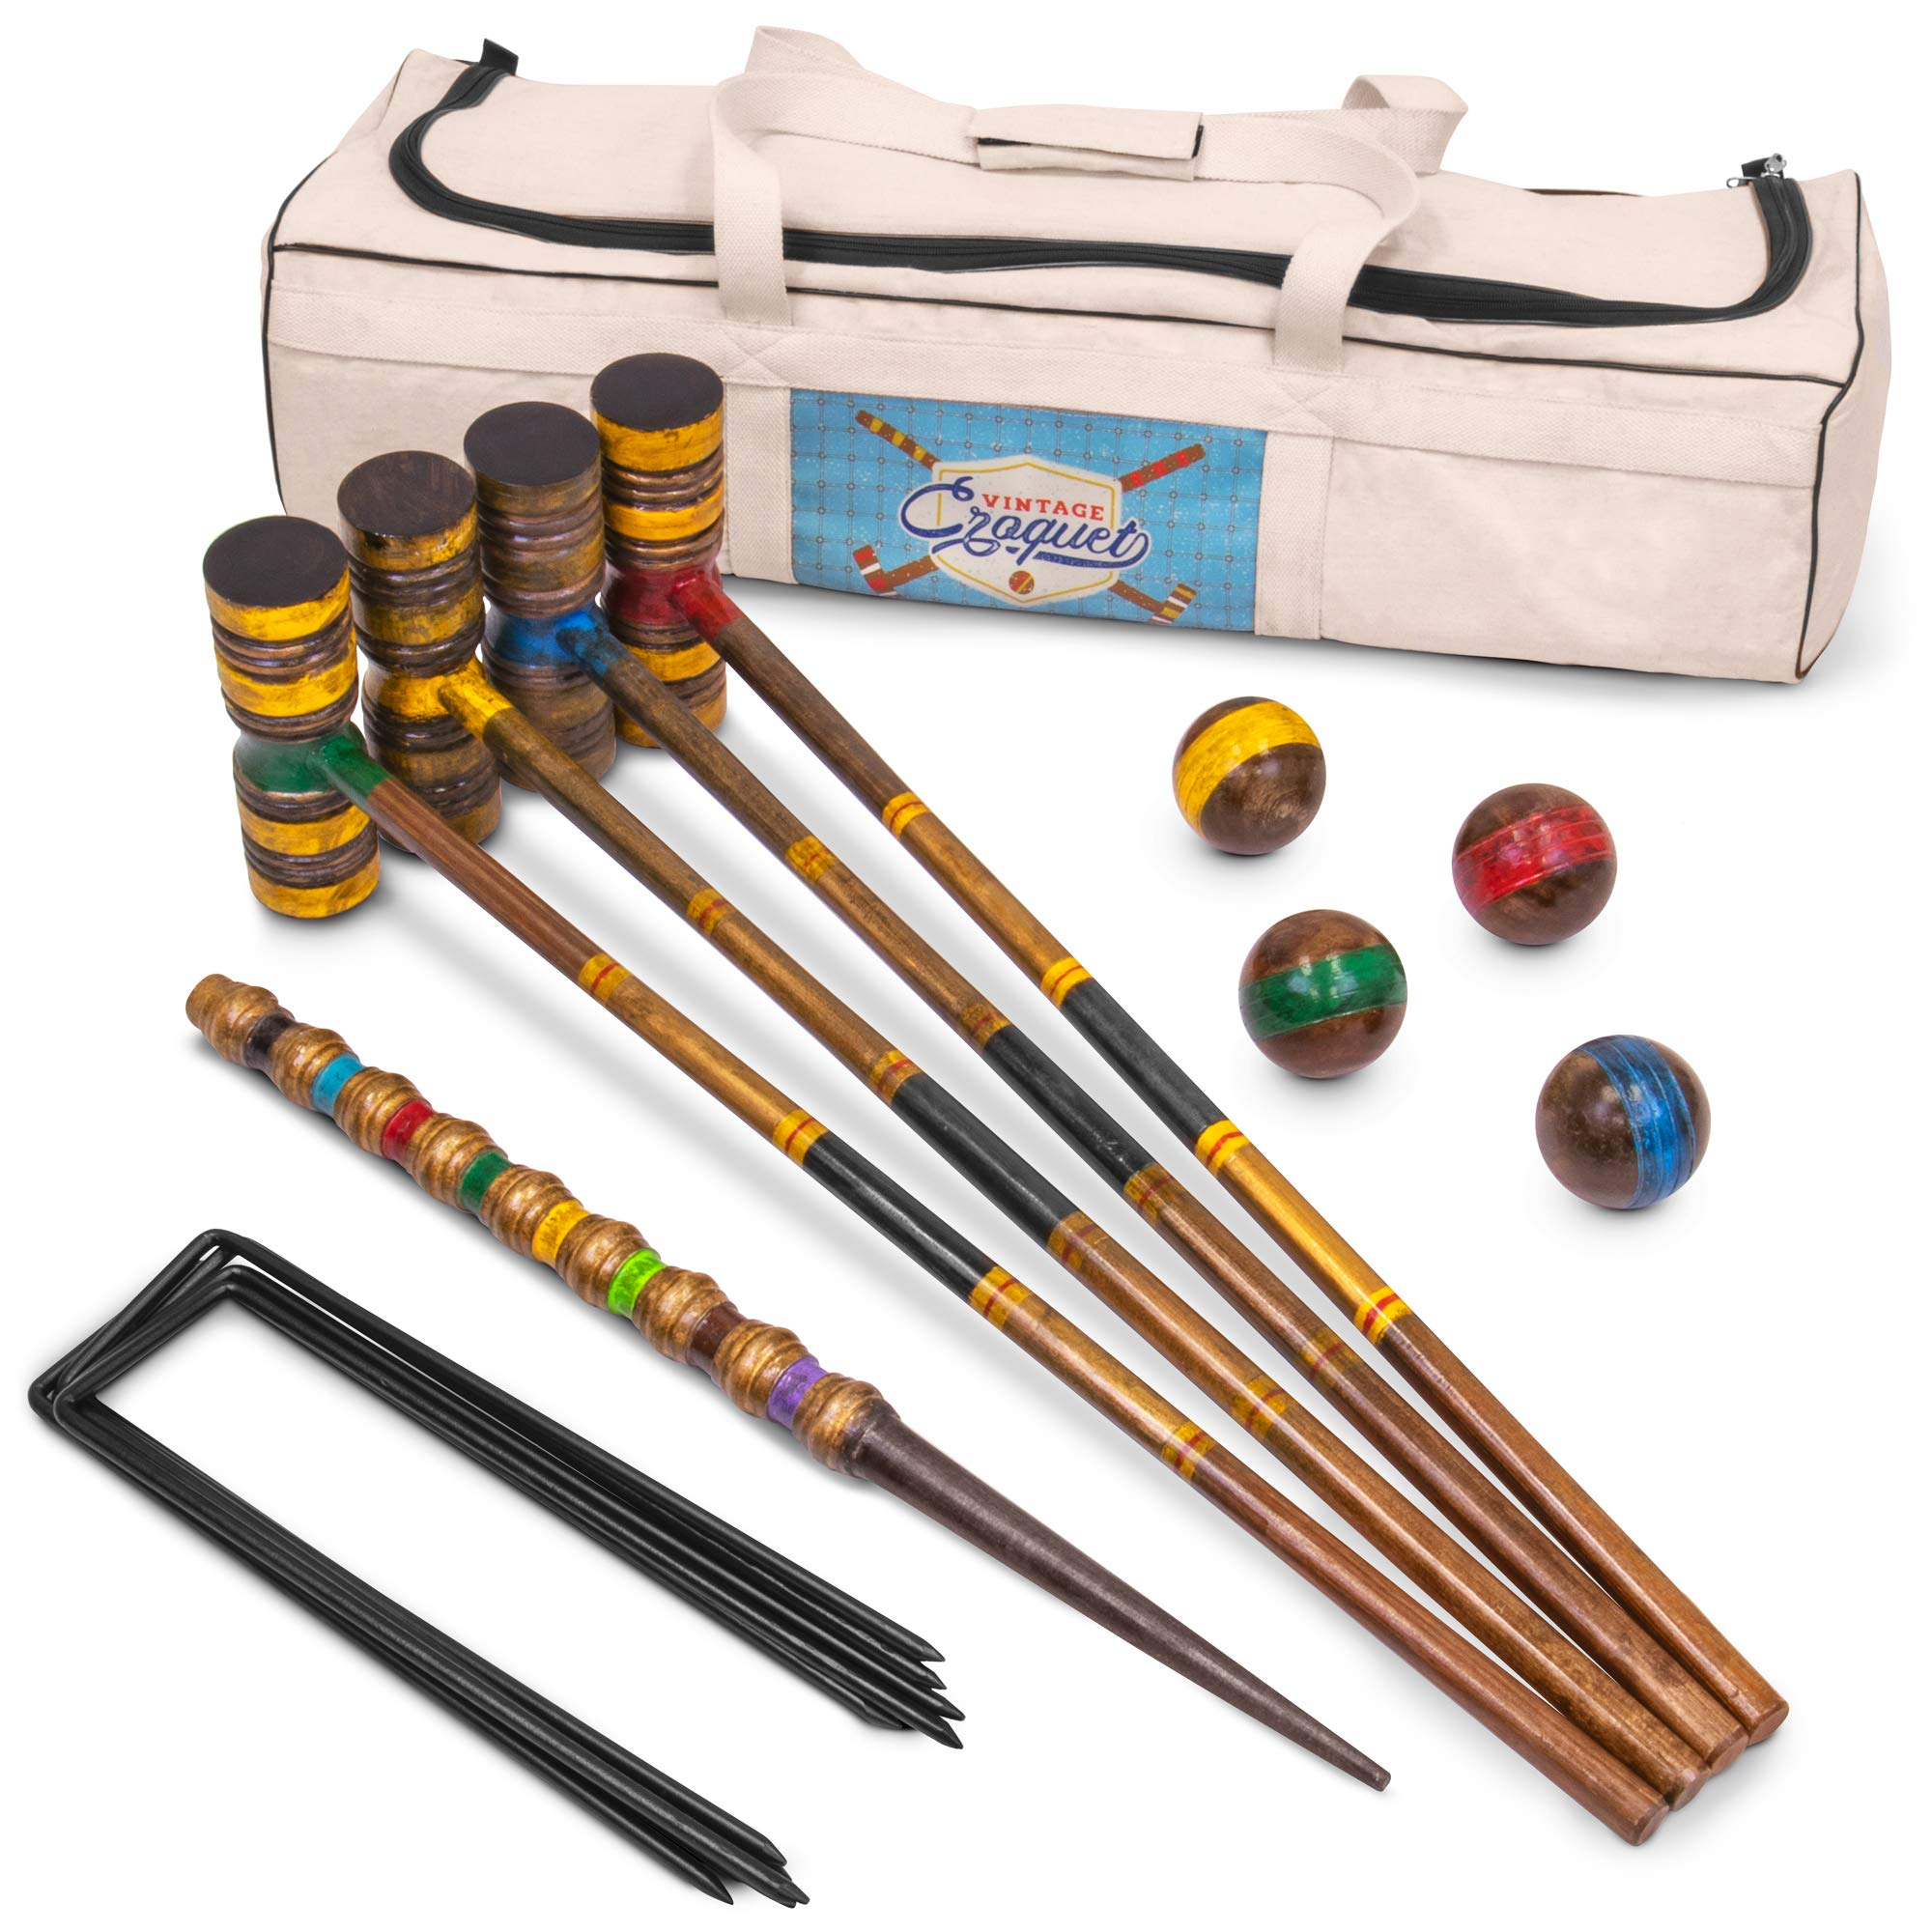 Vintage Wood Premium Croquet Set | 4-player Outdoor Backyard Family Game | Deluxe Set Includes Mallets, Balls, Steel Wickets, and Decorative Stake | Stores in Heavy Duty Canvas Carry Bag by Crown Sporting Goods (Image #1)